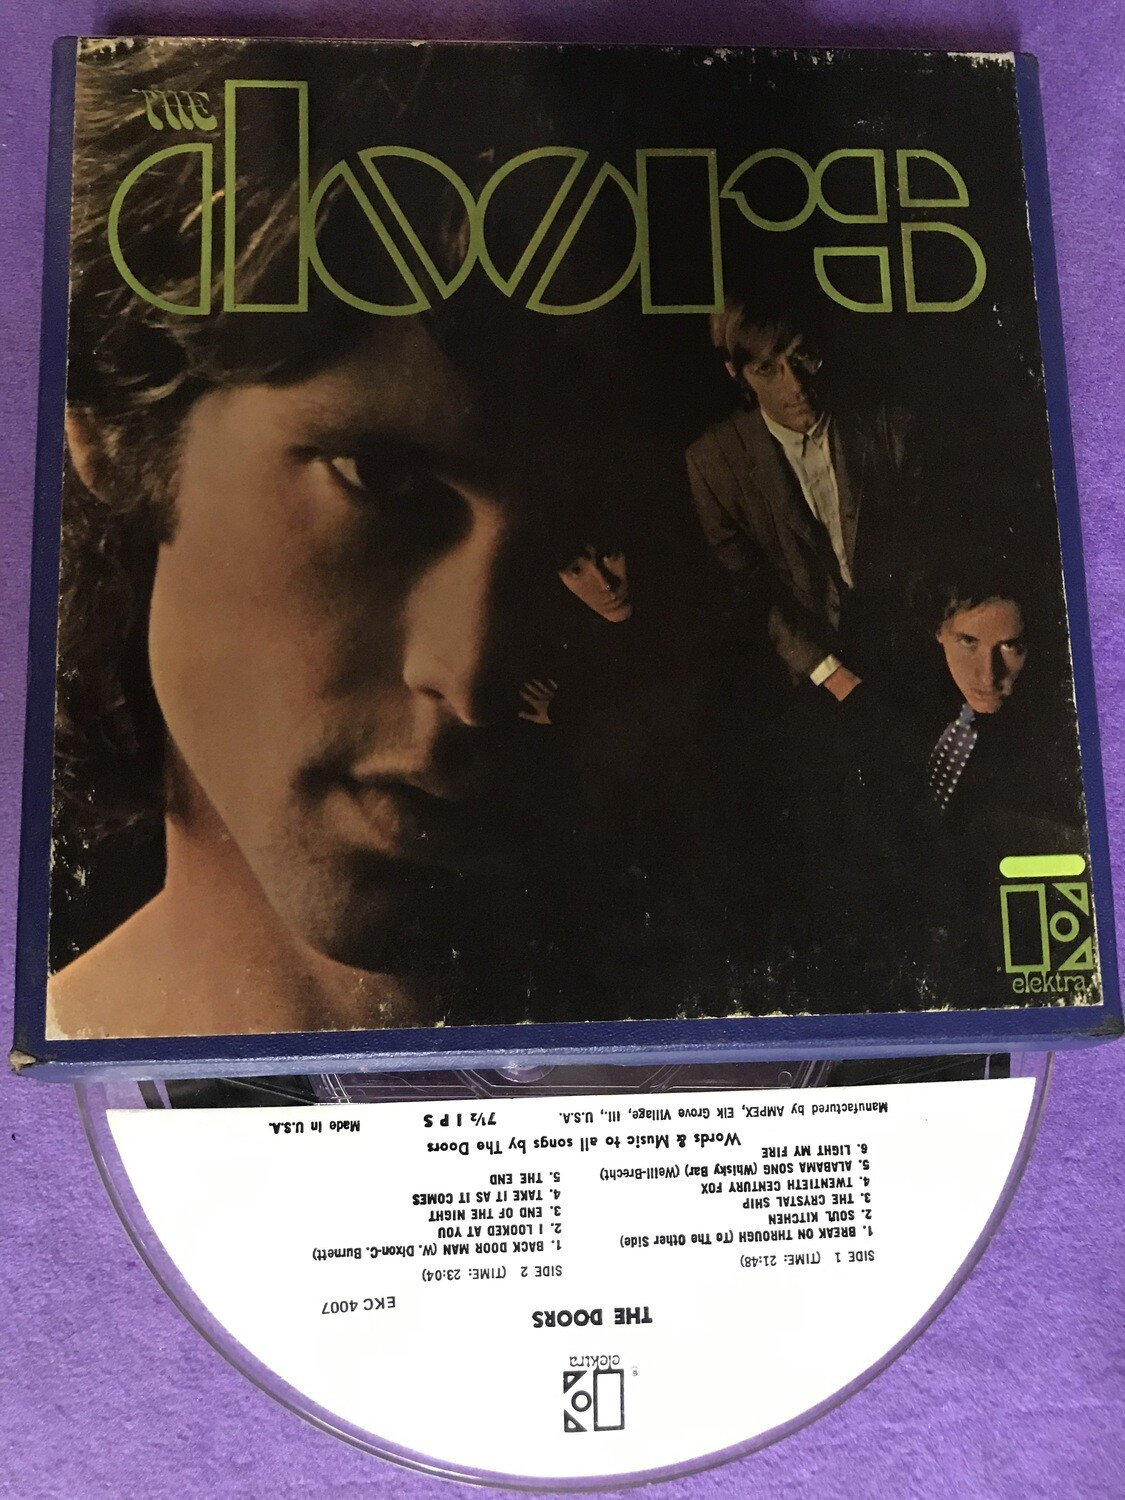 The Doors - Reel to Reel